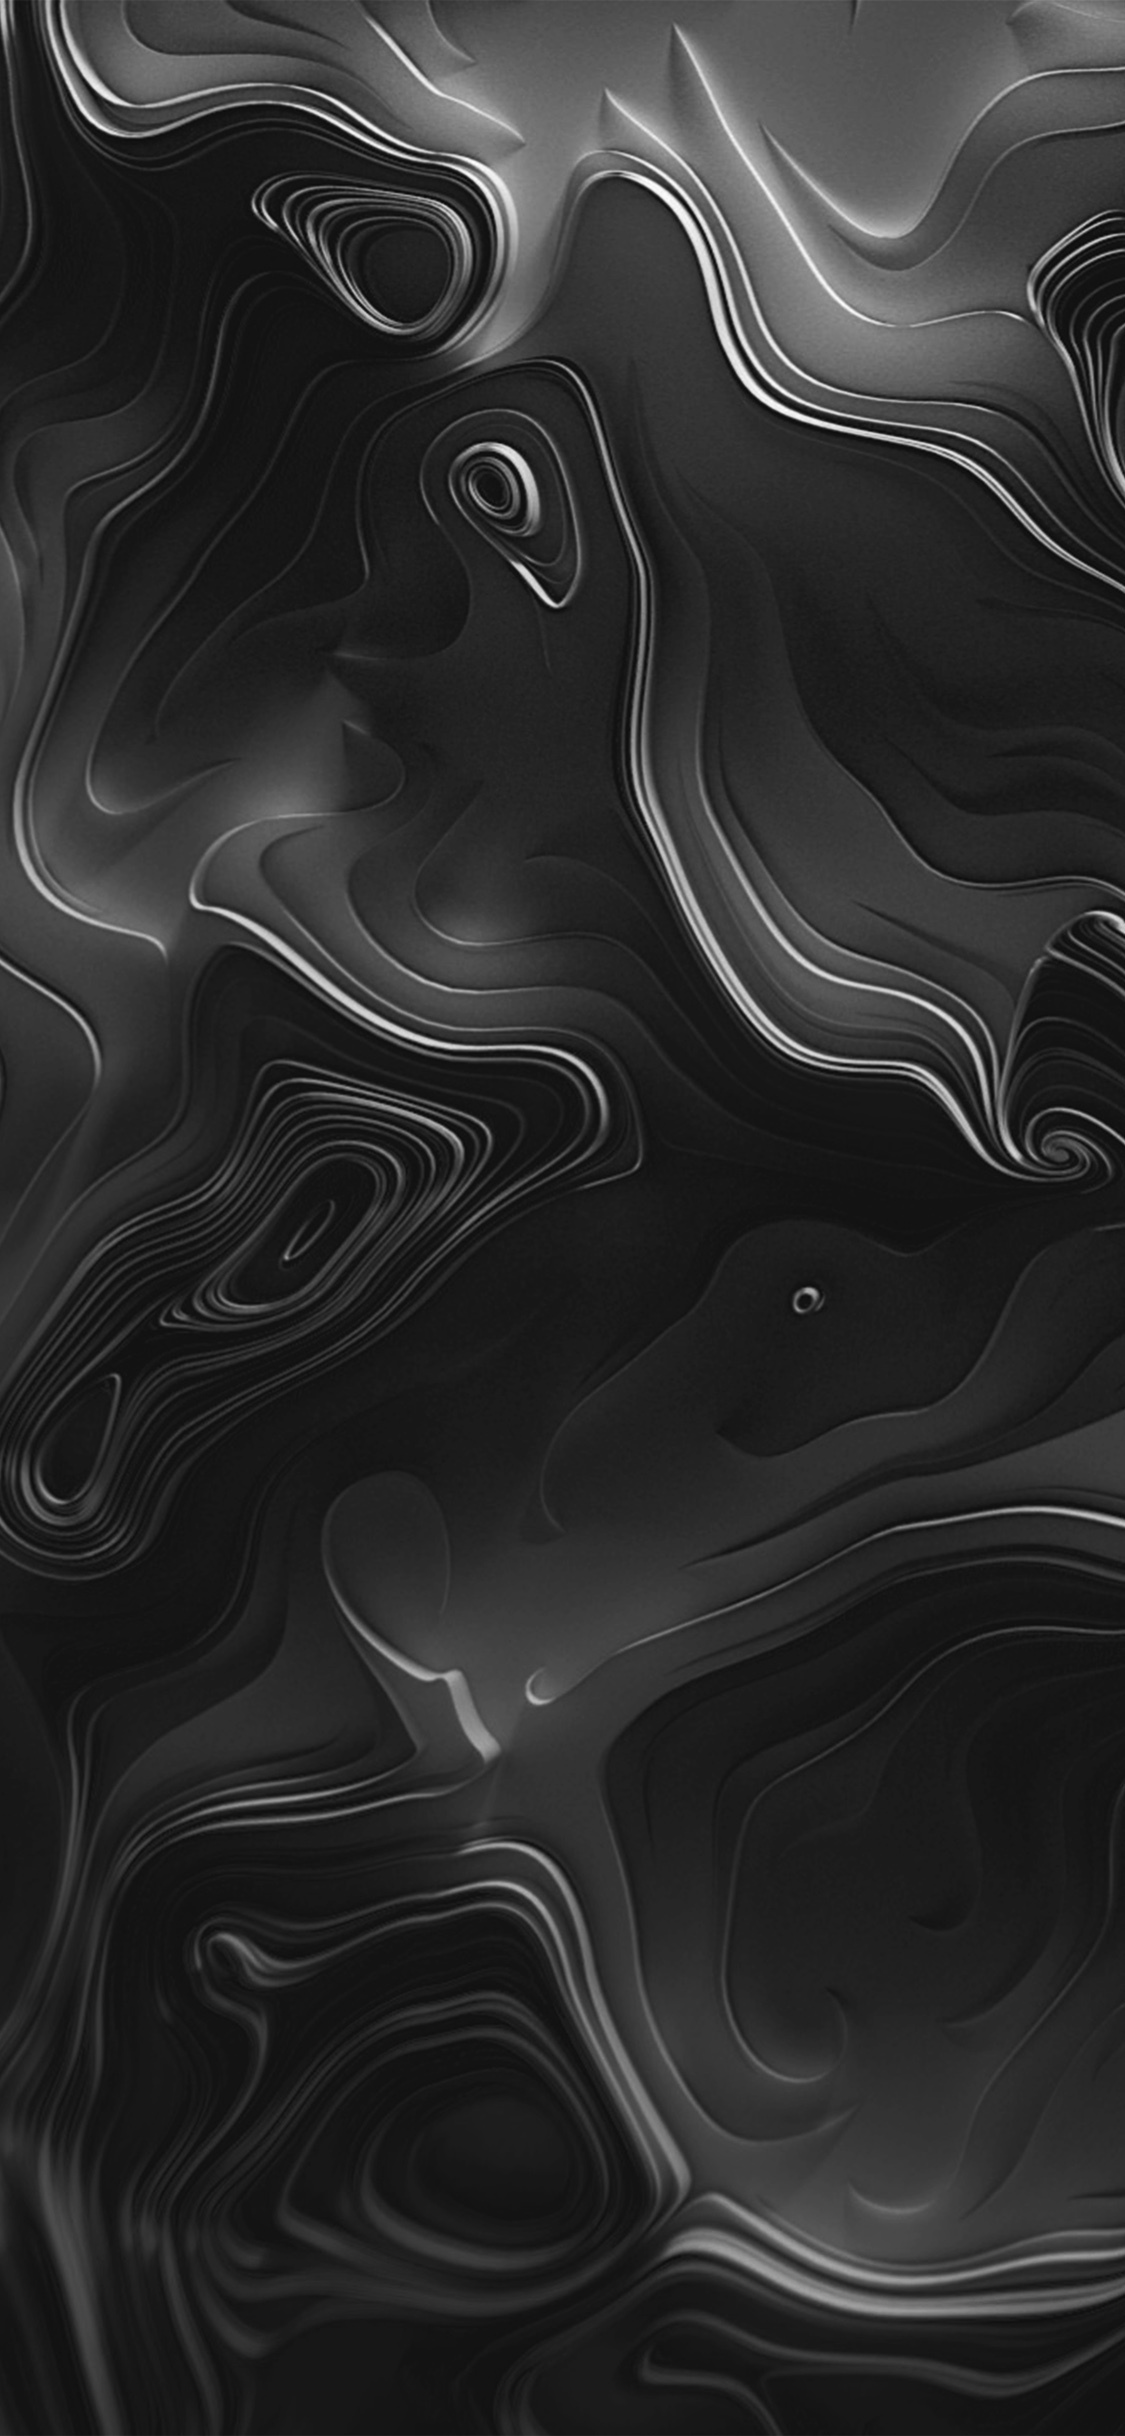 iPhonexpapers.com-Apple-iPhone-wallpaper-vv24-map-curves-dark-pattern-background-bw